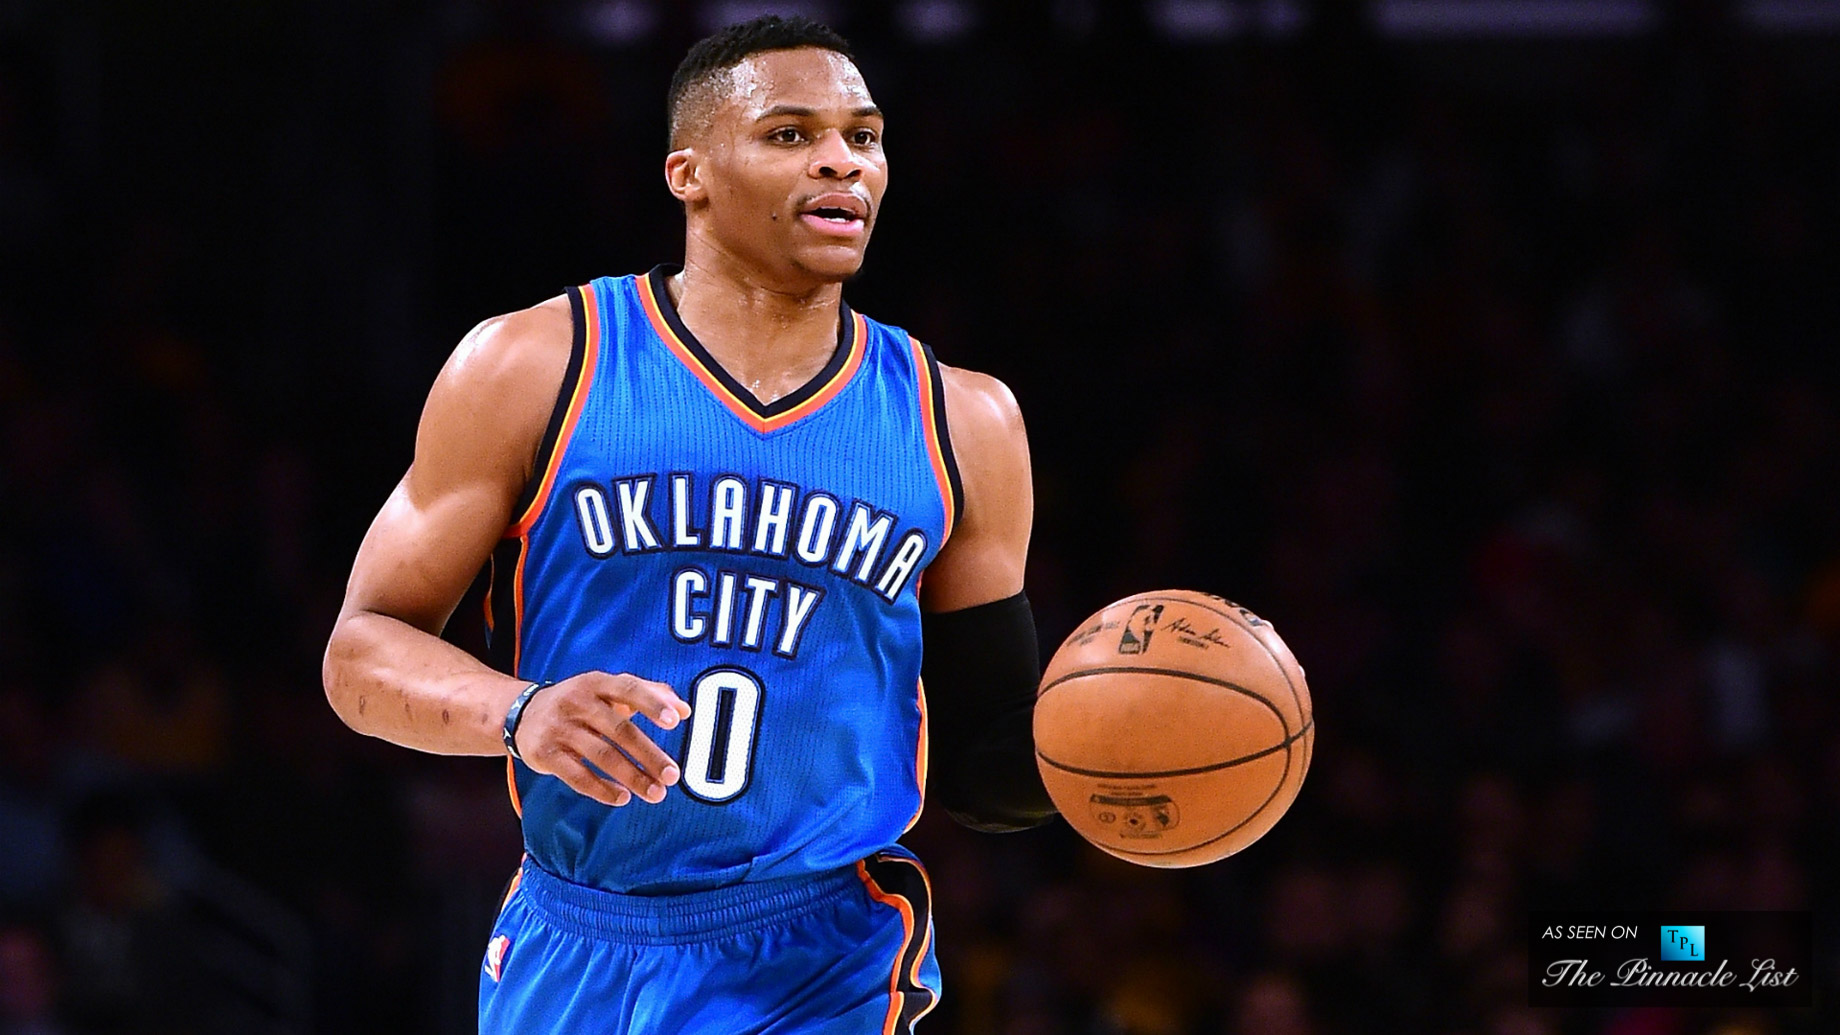 Russell Westbrook - The Luxury Lifestyle of 3 NBA Stars